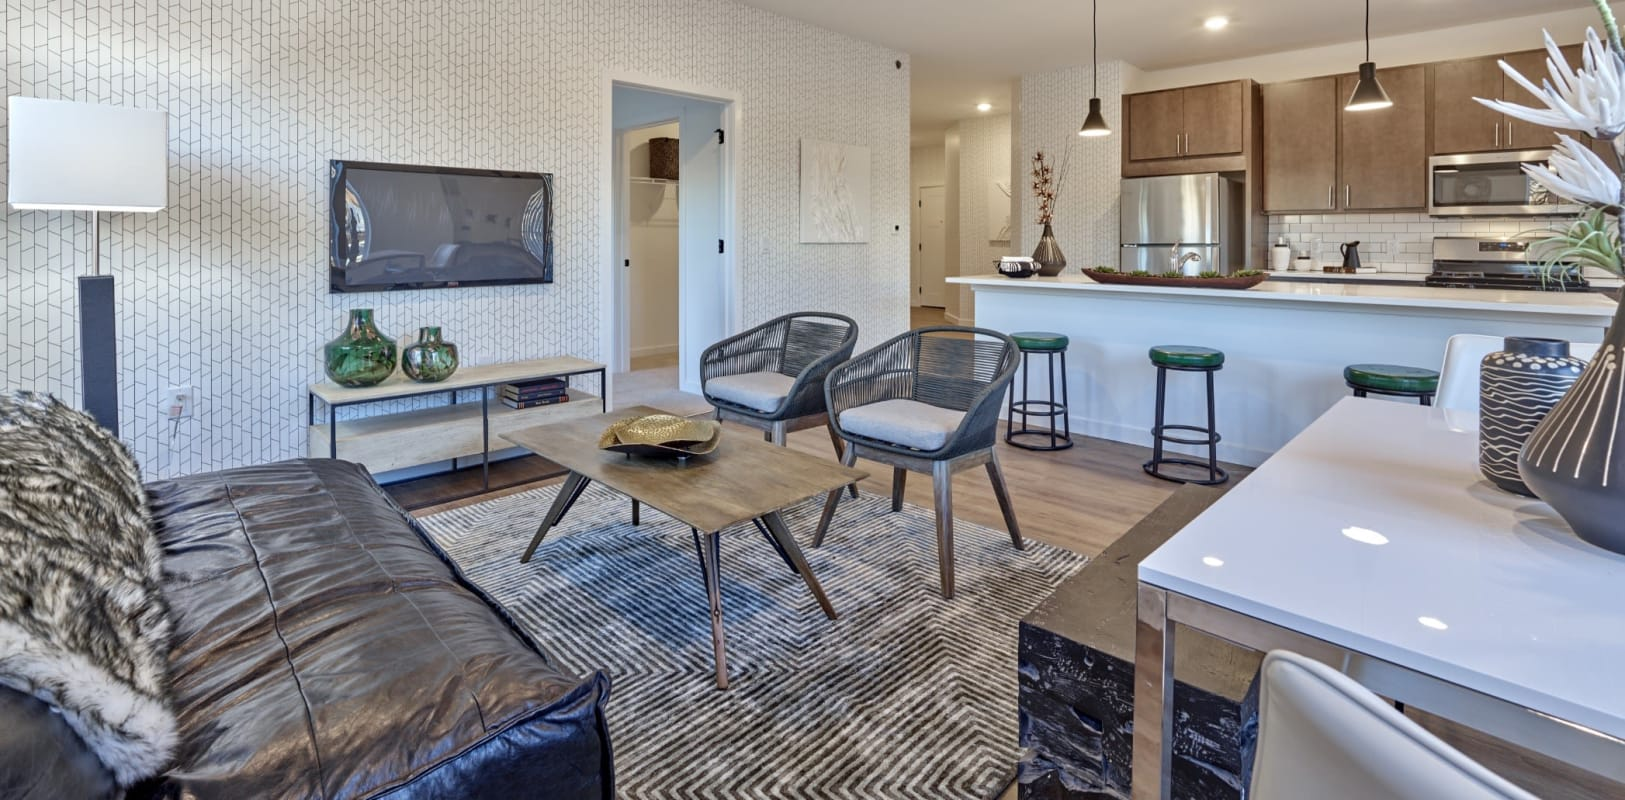 New wood flooring in a model home's living area at The Mills at Lehigh in Bethlehem, Pennsylvania